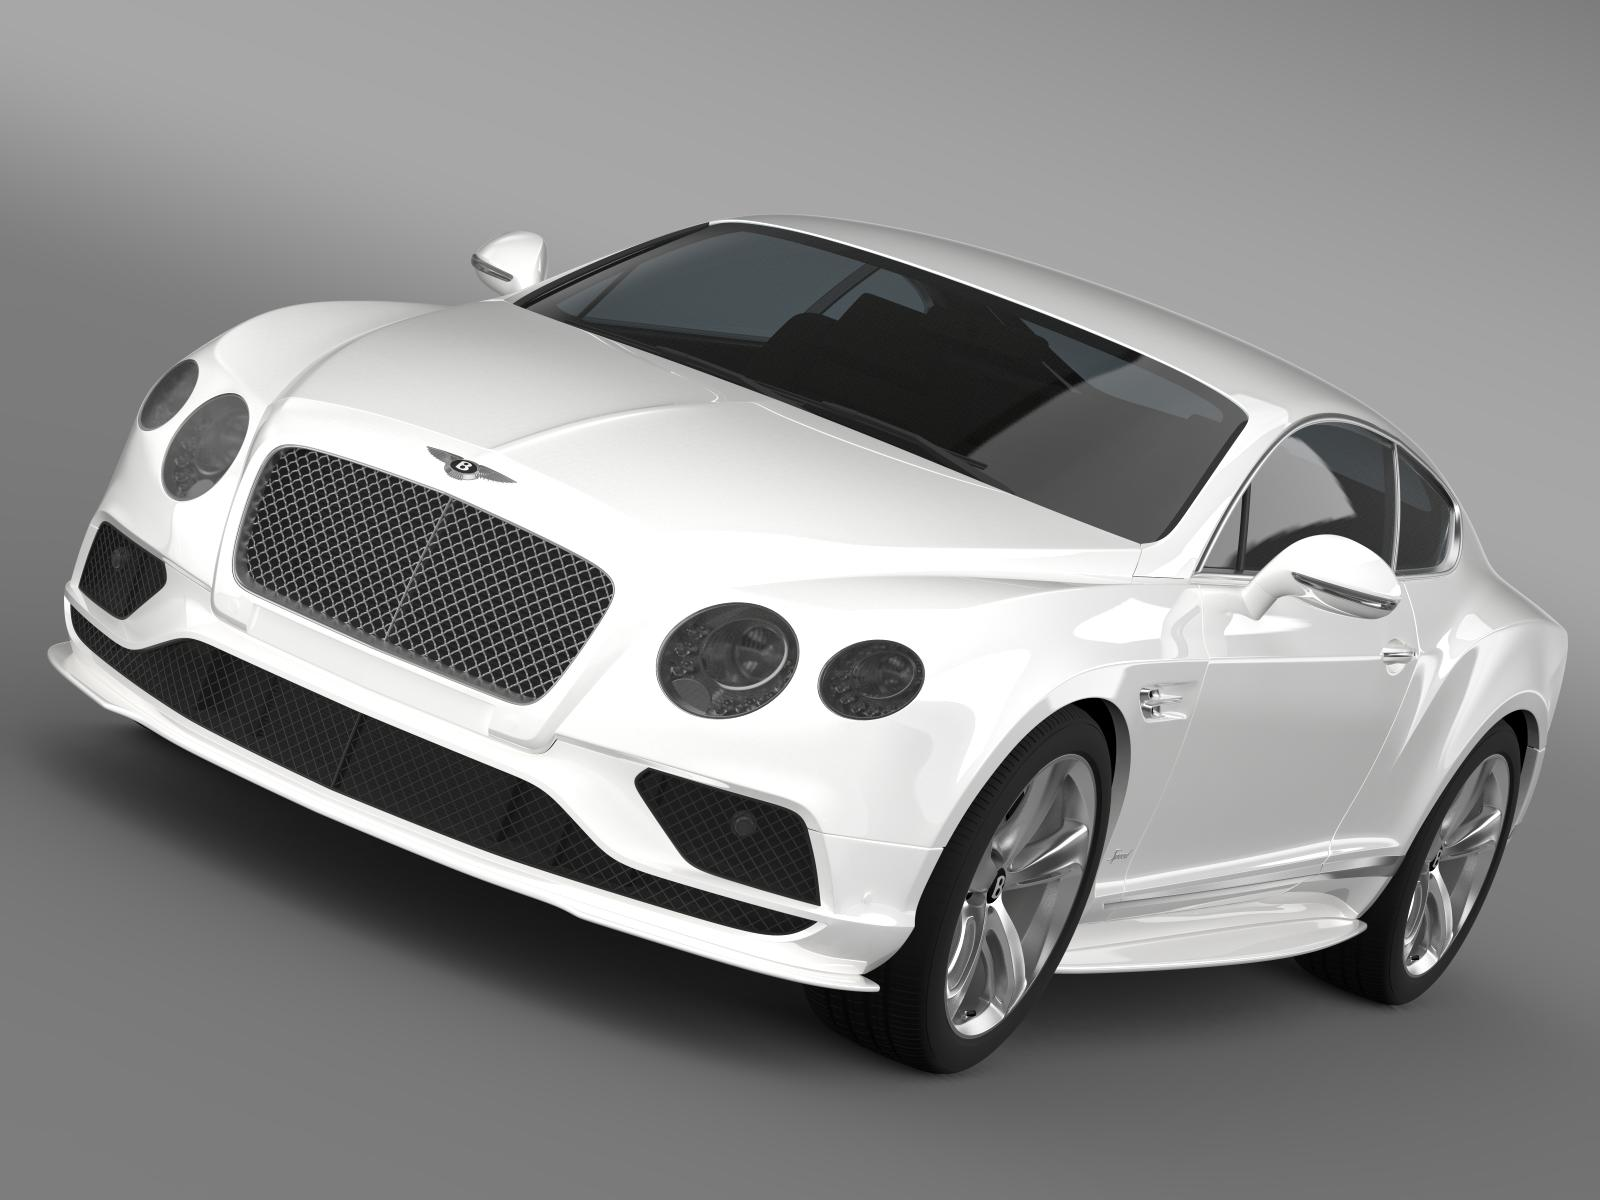 bentley continental gt speed 2015 3d model 3ds max fbx c4d lwo ma mb hrc xsi obj 207266